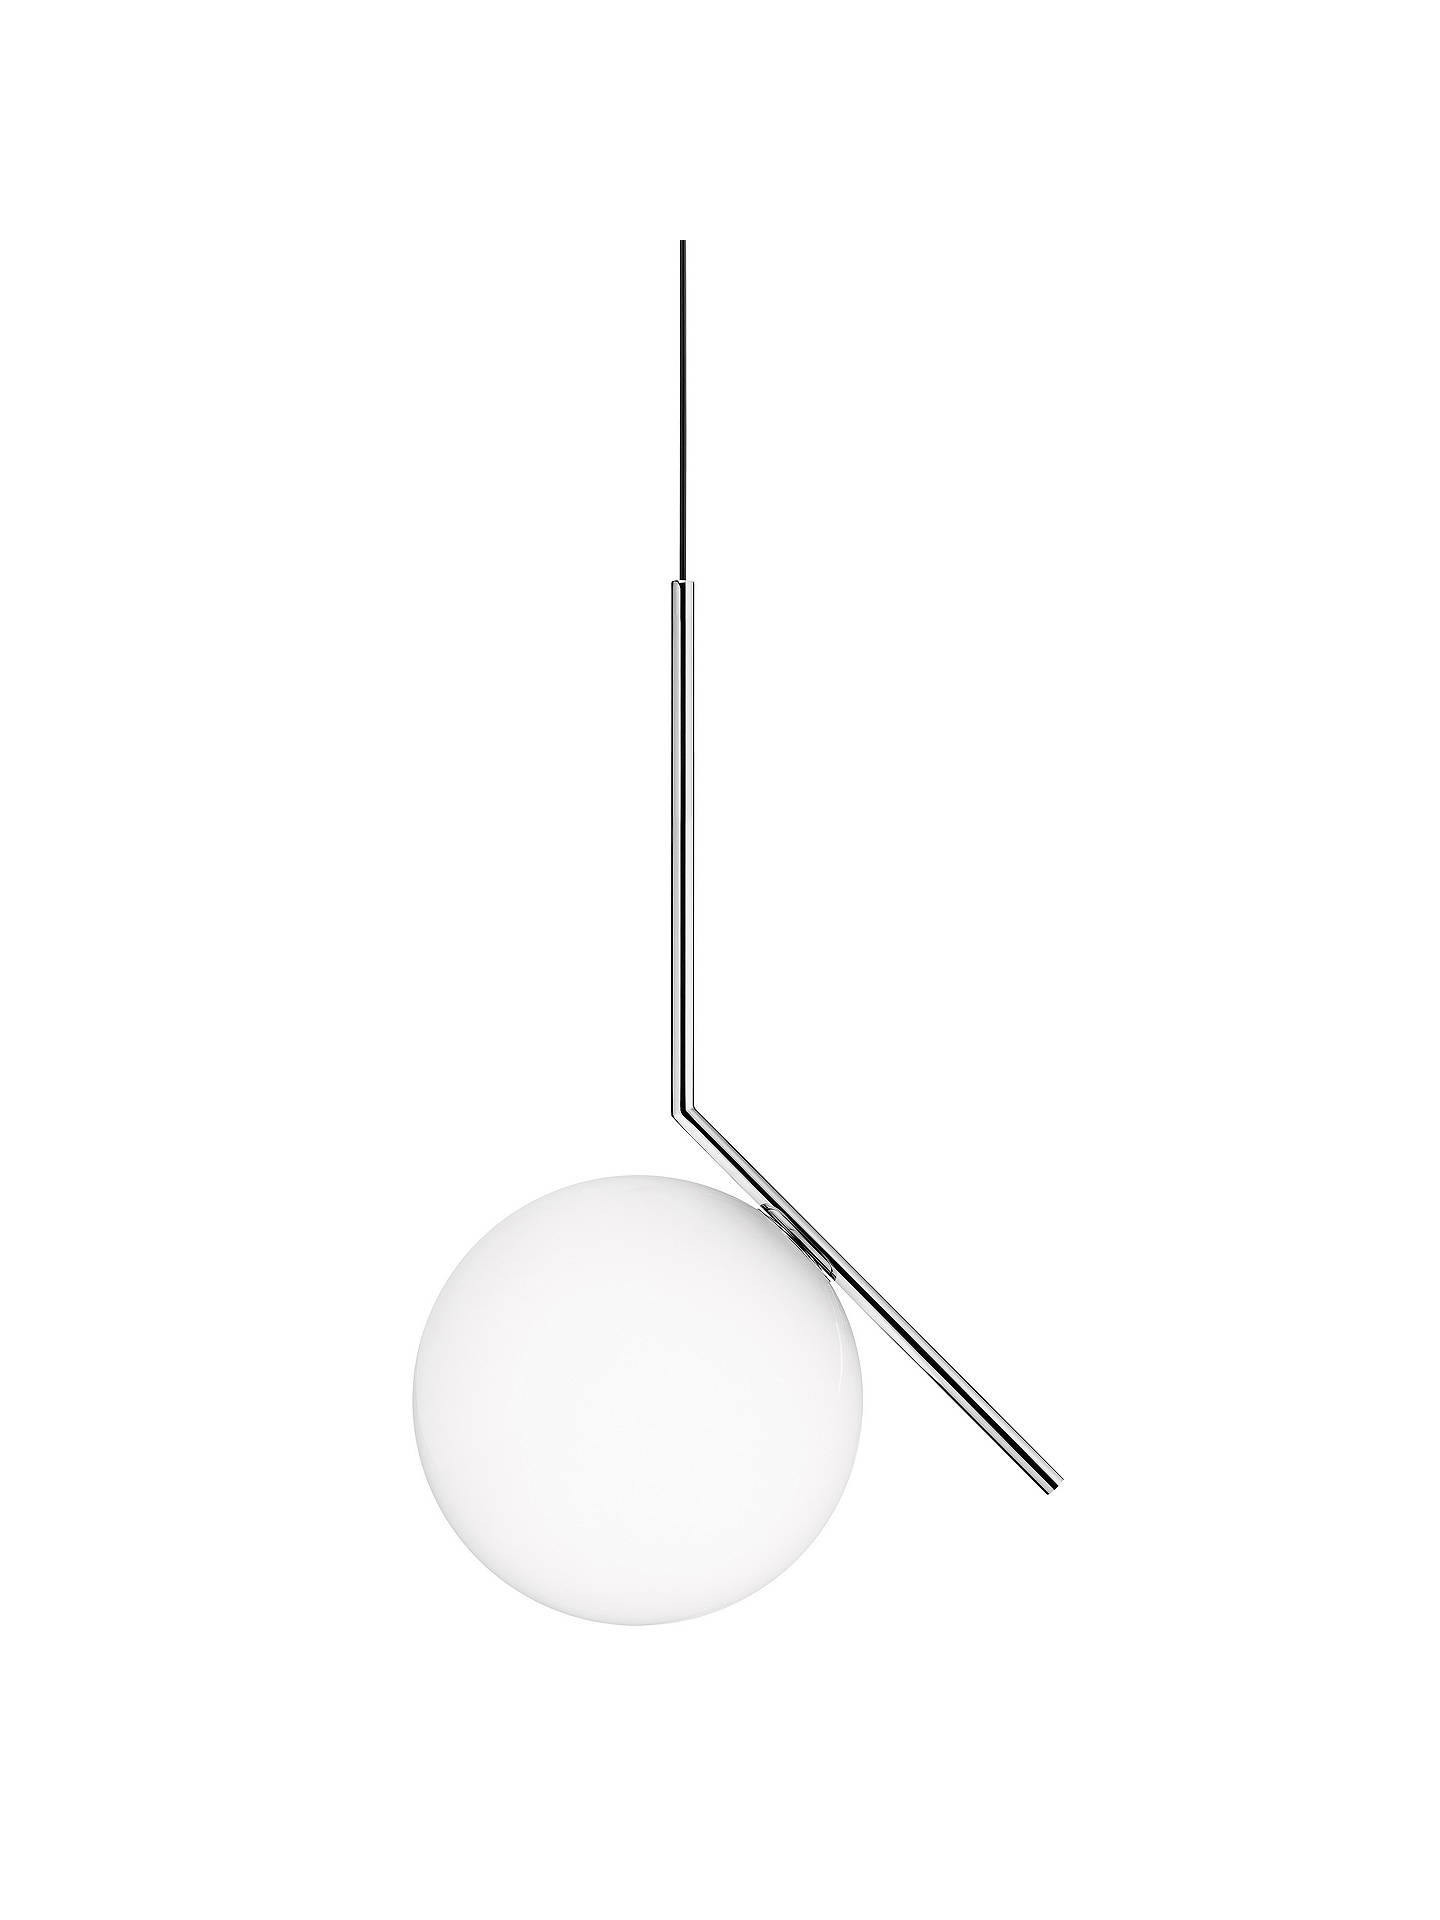 BuyFlos IC S1 Ceiling Light, 20cm, Polished Chrome Online at johnlewis.com